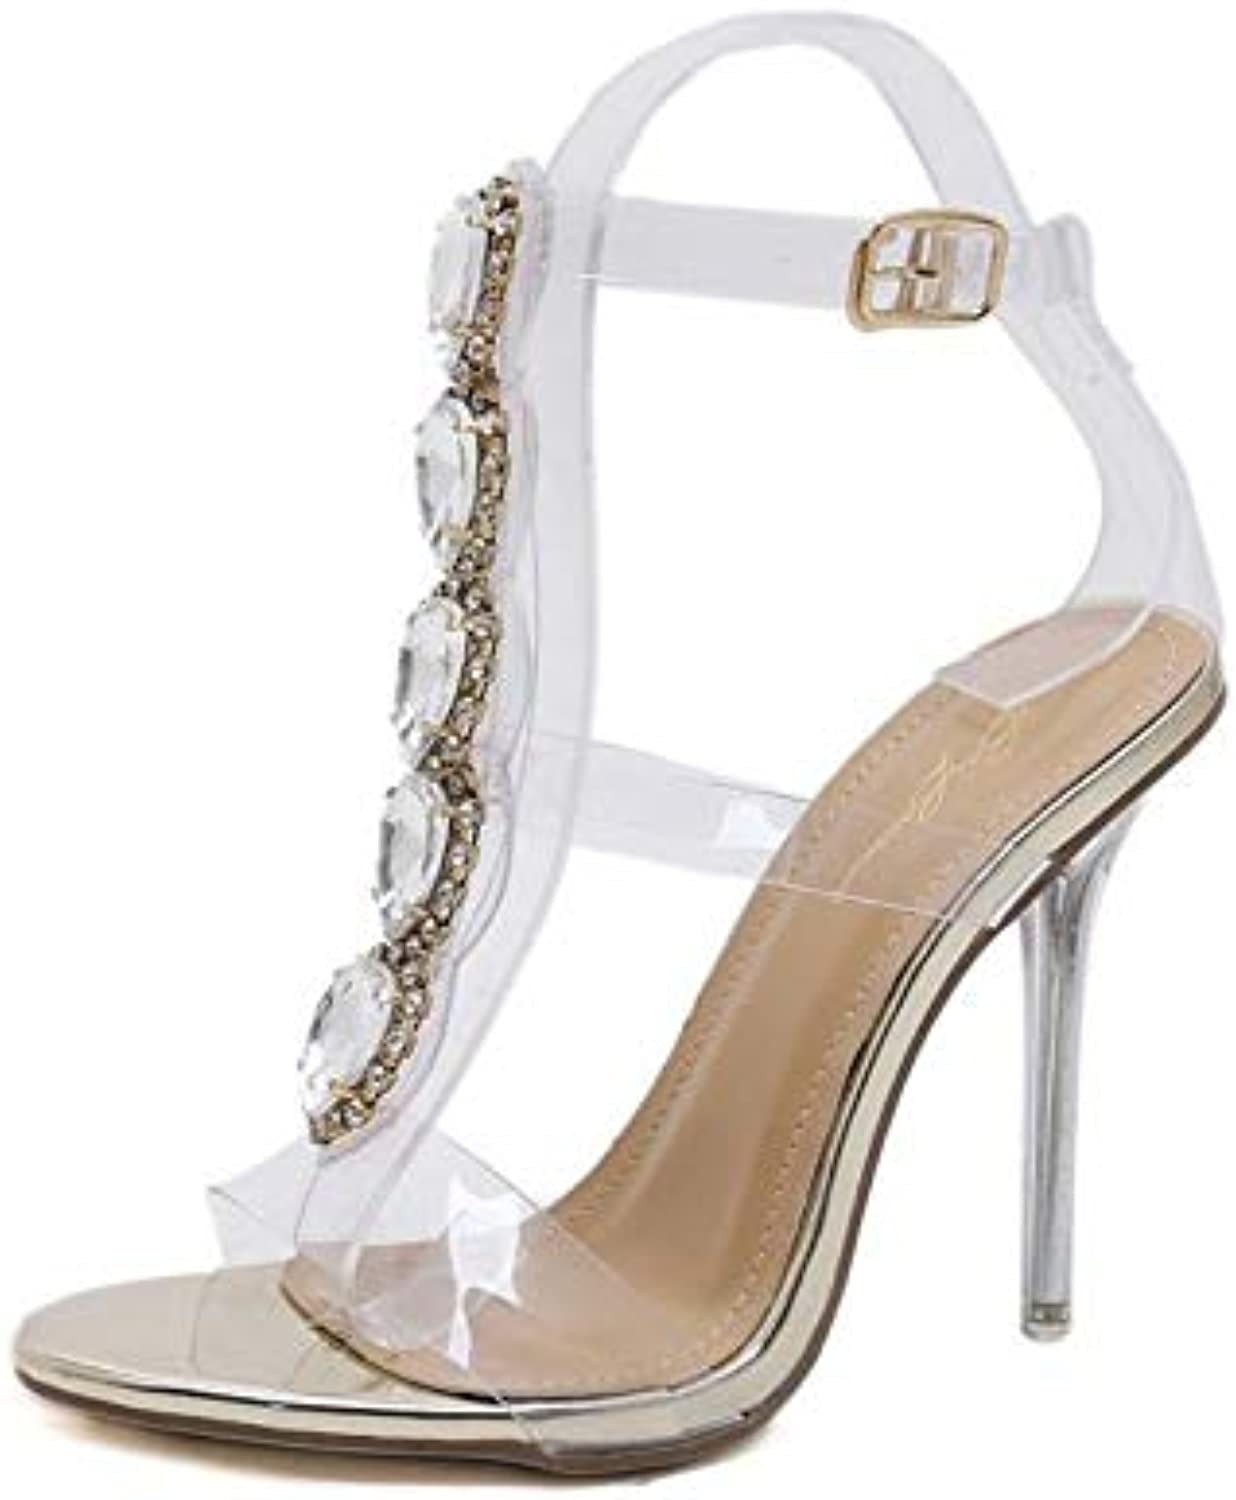 JQfashion Ladies'High Heels Transparent PVC Sexy High-Heeled Sandals with Pointed and Thin Heels